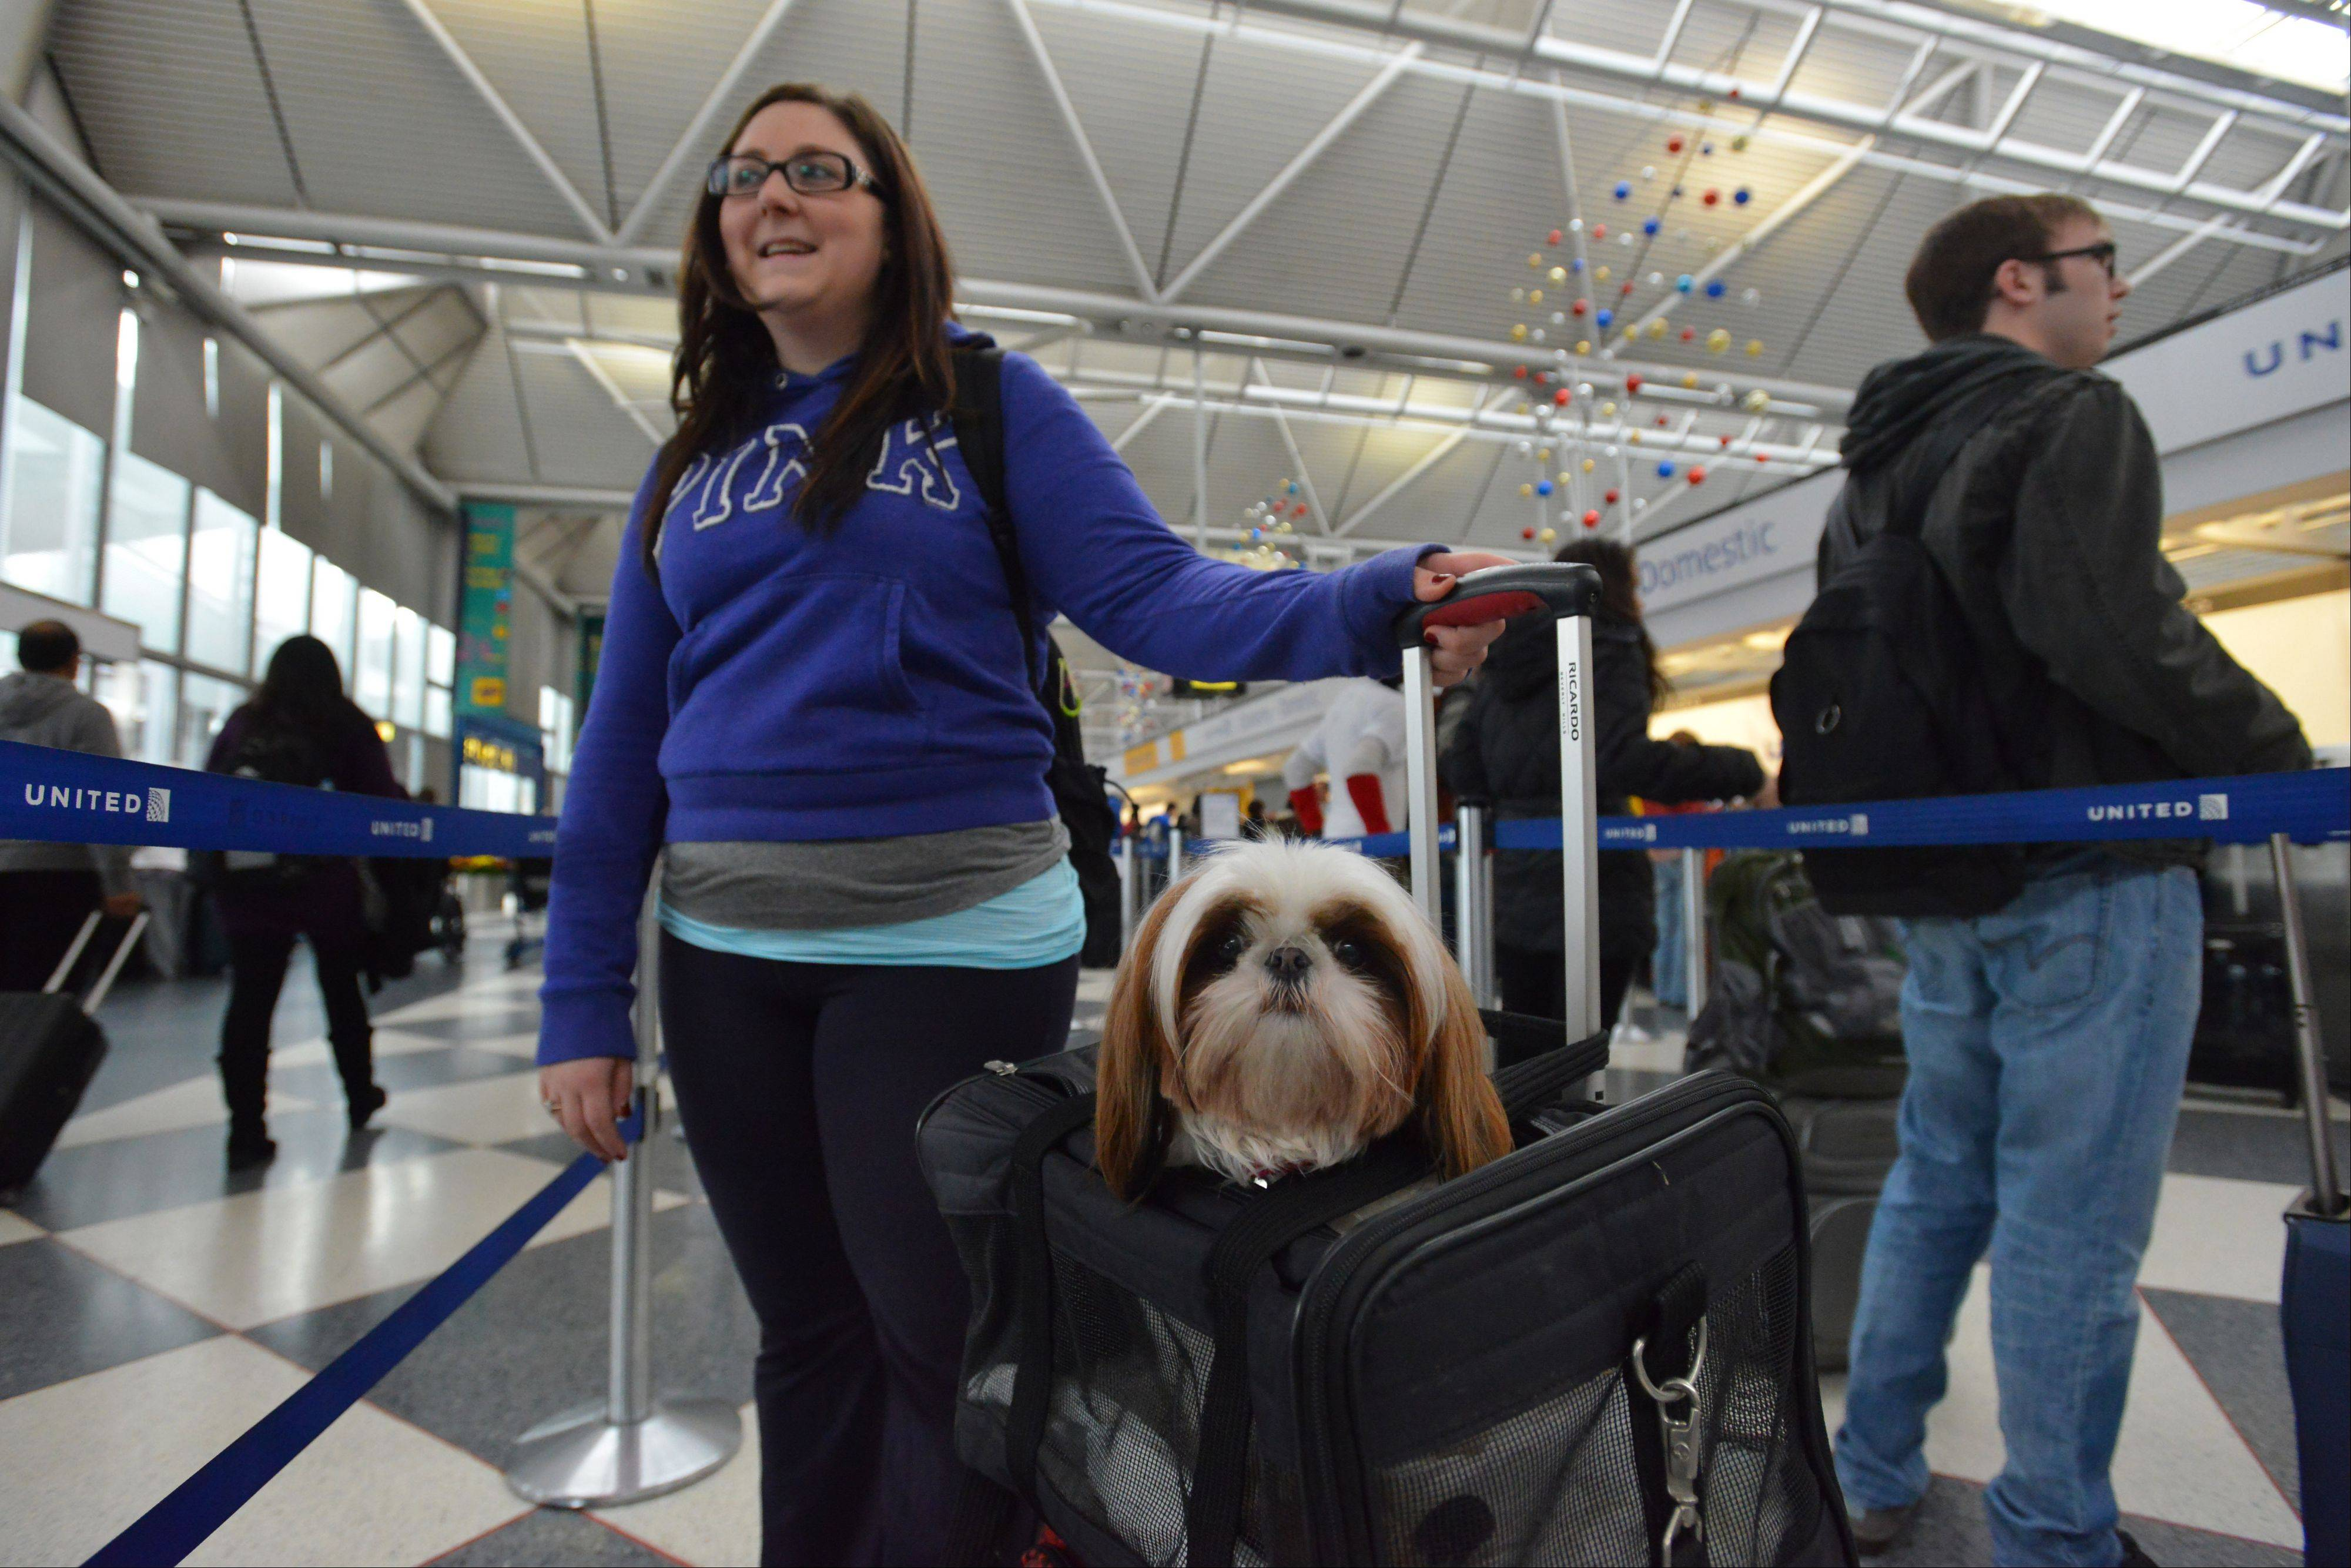 Brittany Trauthwein of Chicago and her dog Tiffany head out of Chicago's O'Hare International Airport on a foggy Wednesday hoping to make it to North Carolina to see family.